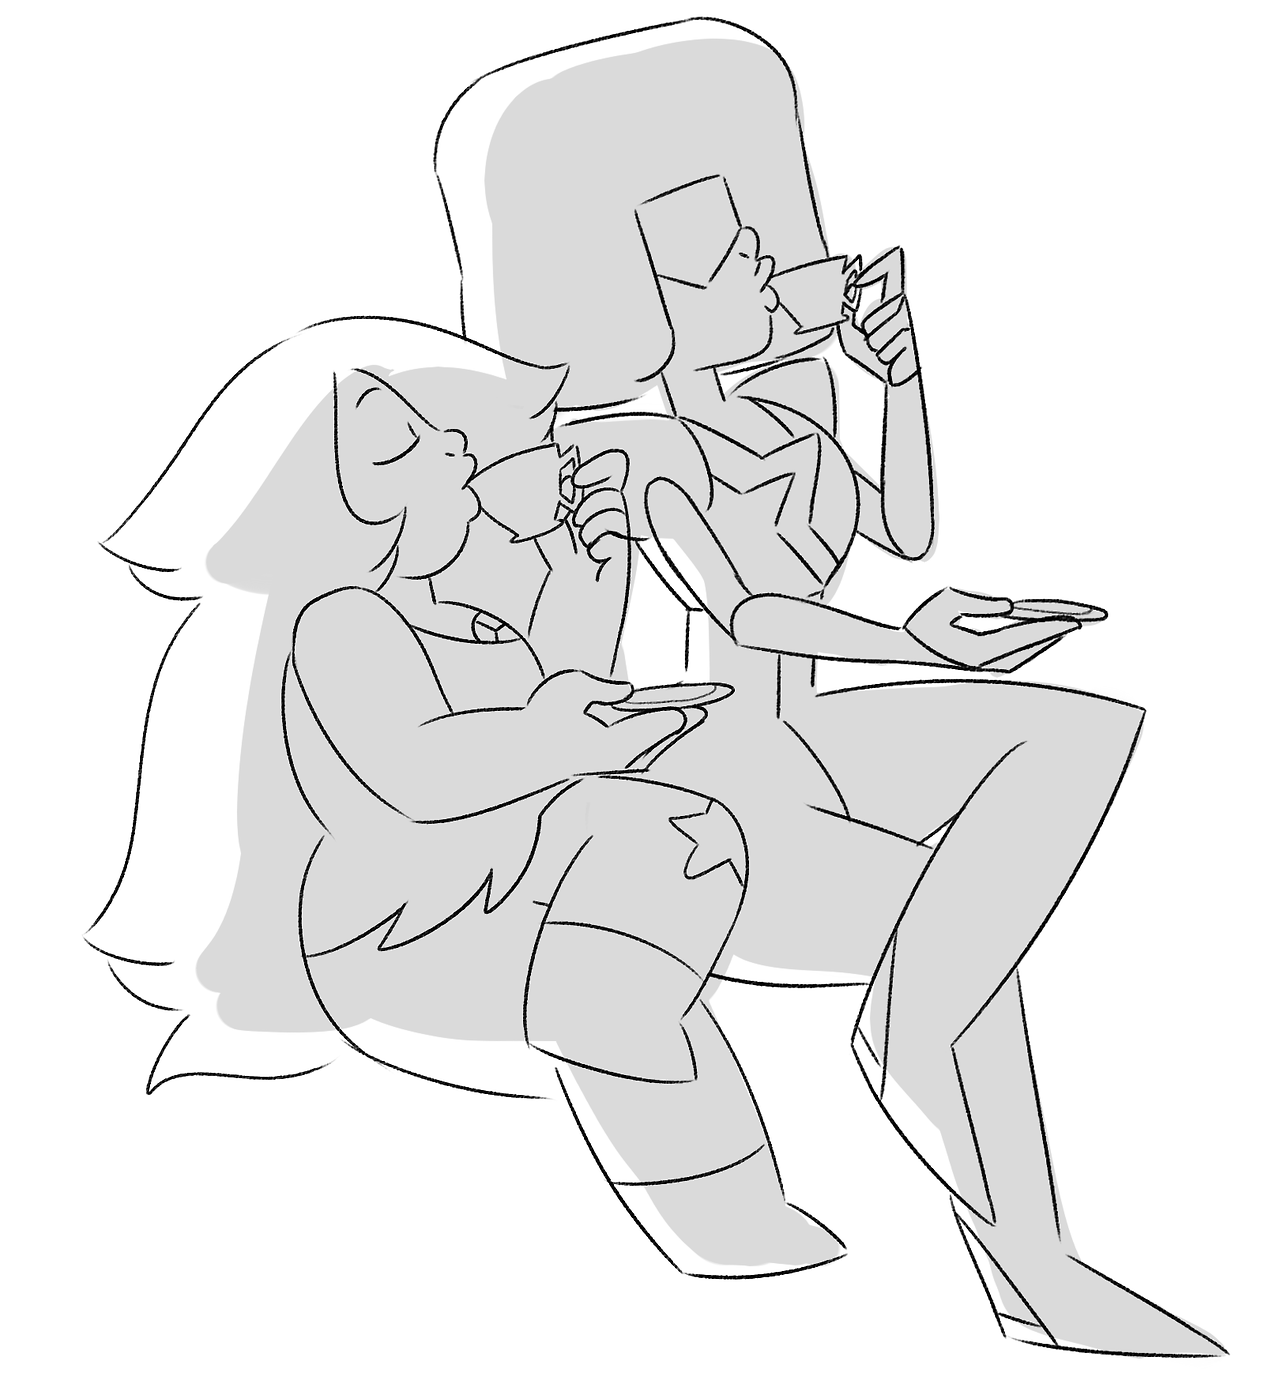 gamethyst bomb day 1: peacetime just a simple sketch of some gals enjoying some tea together :>